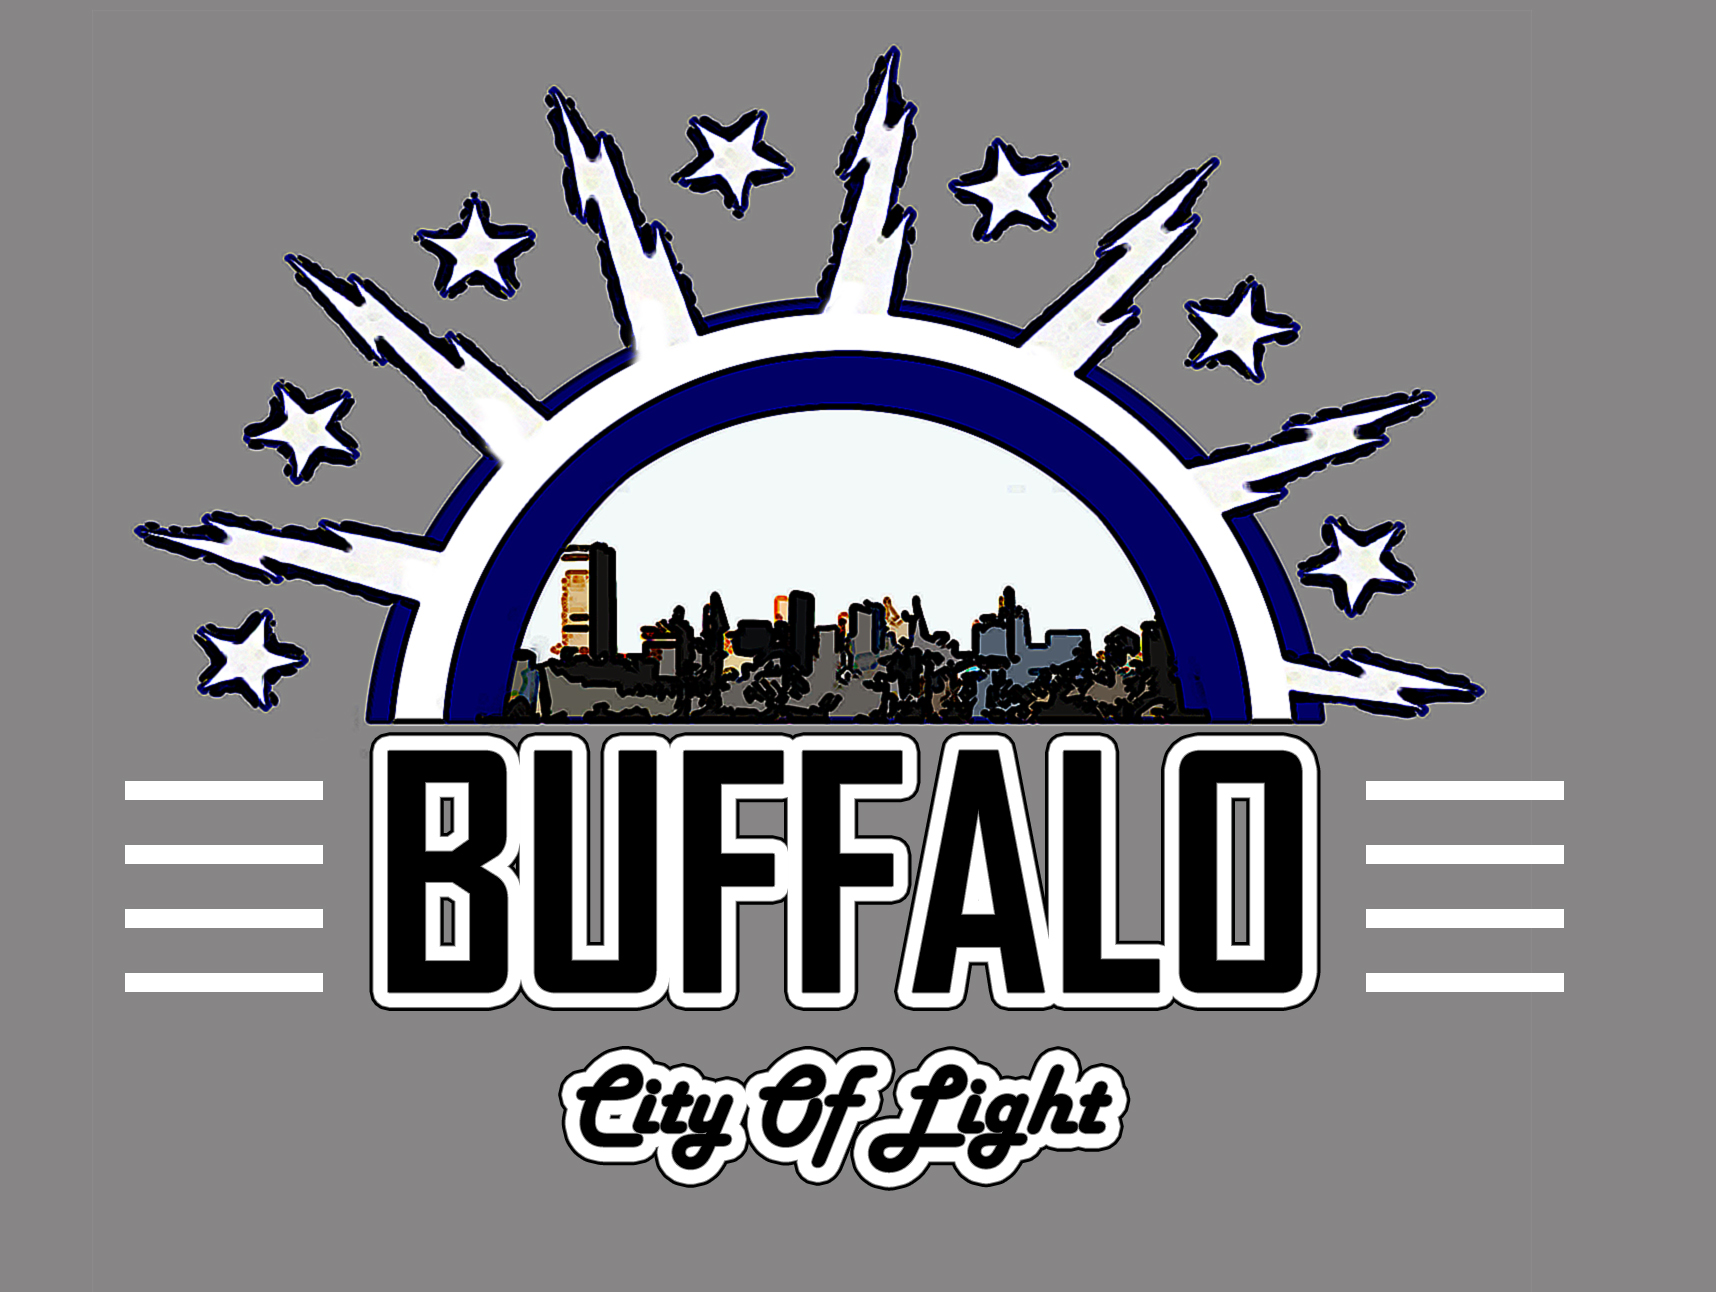 BFLO city of light design